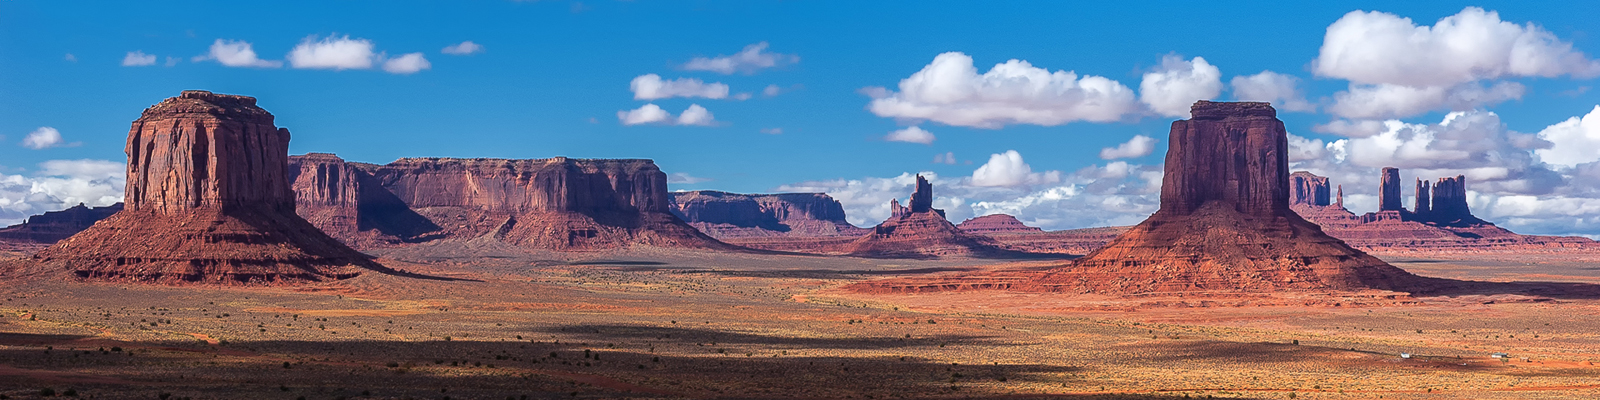 Cote_Leclerc_Michele_Monument_Valley